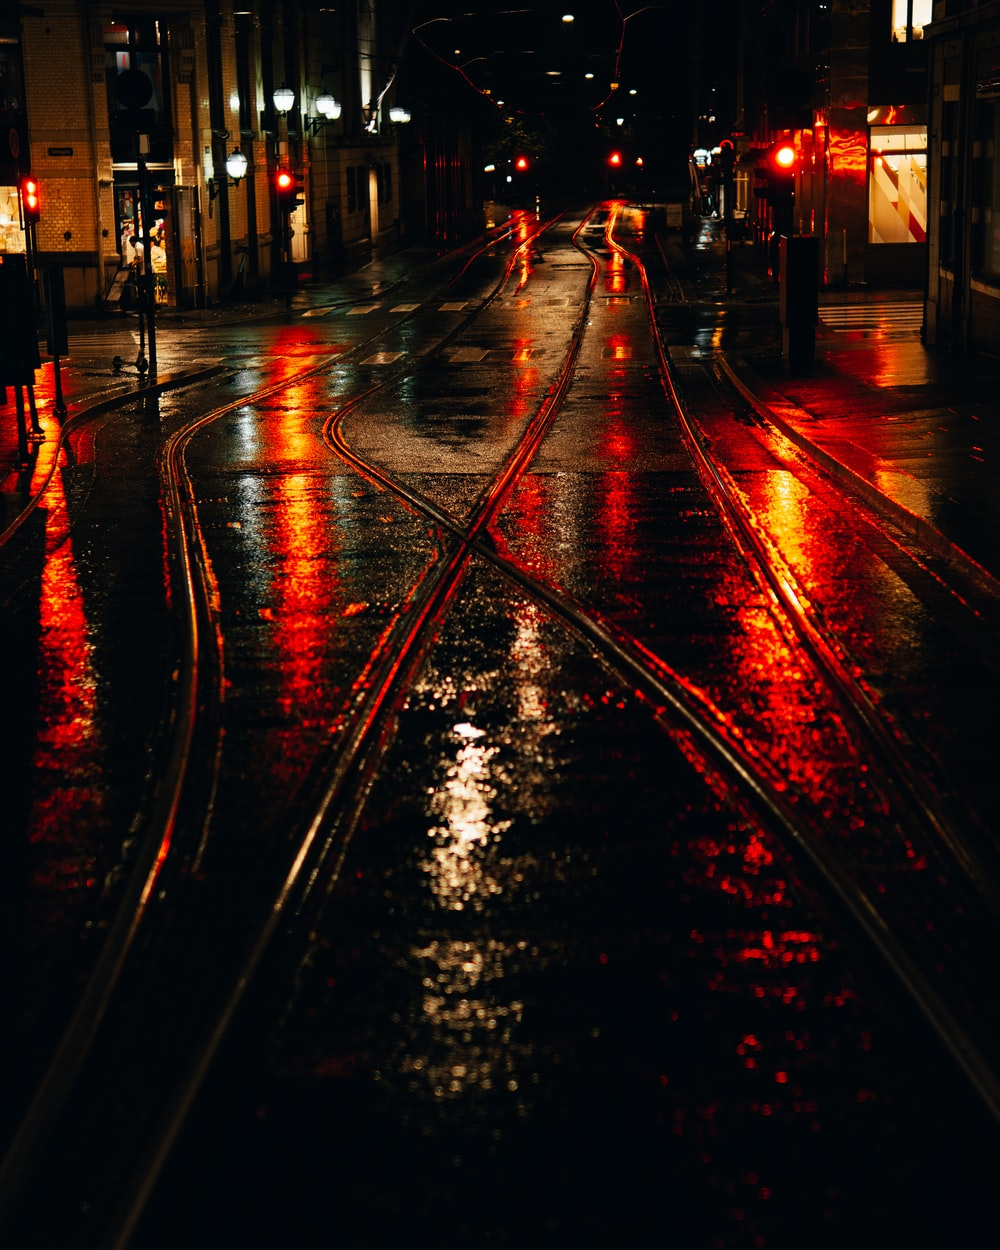 city street with red lights during night time